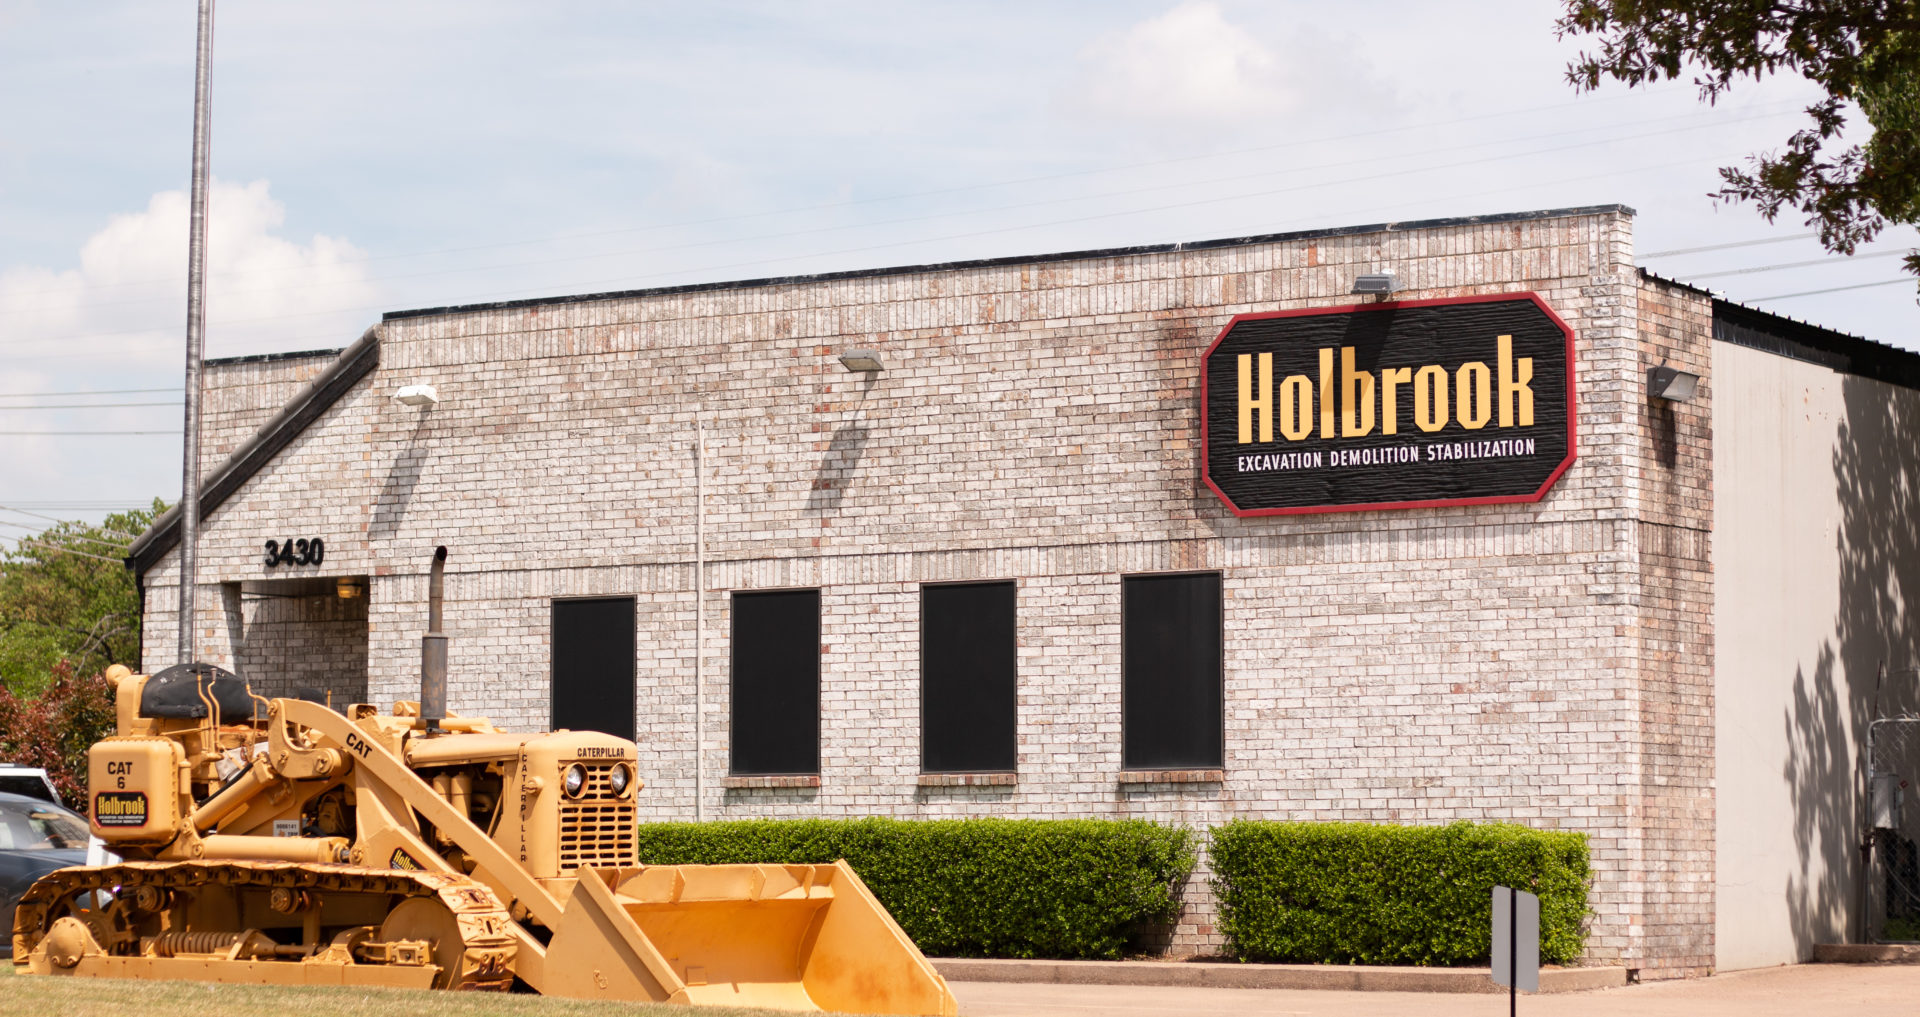 The Holbrook Company